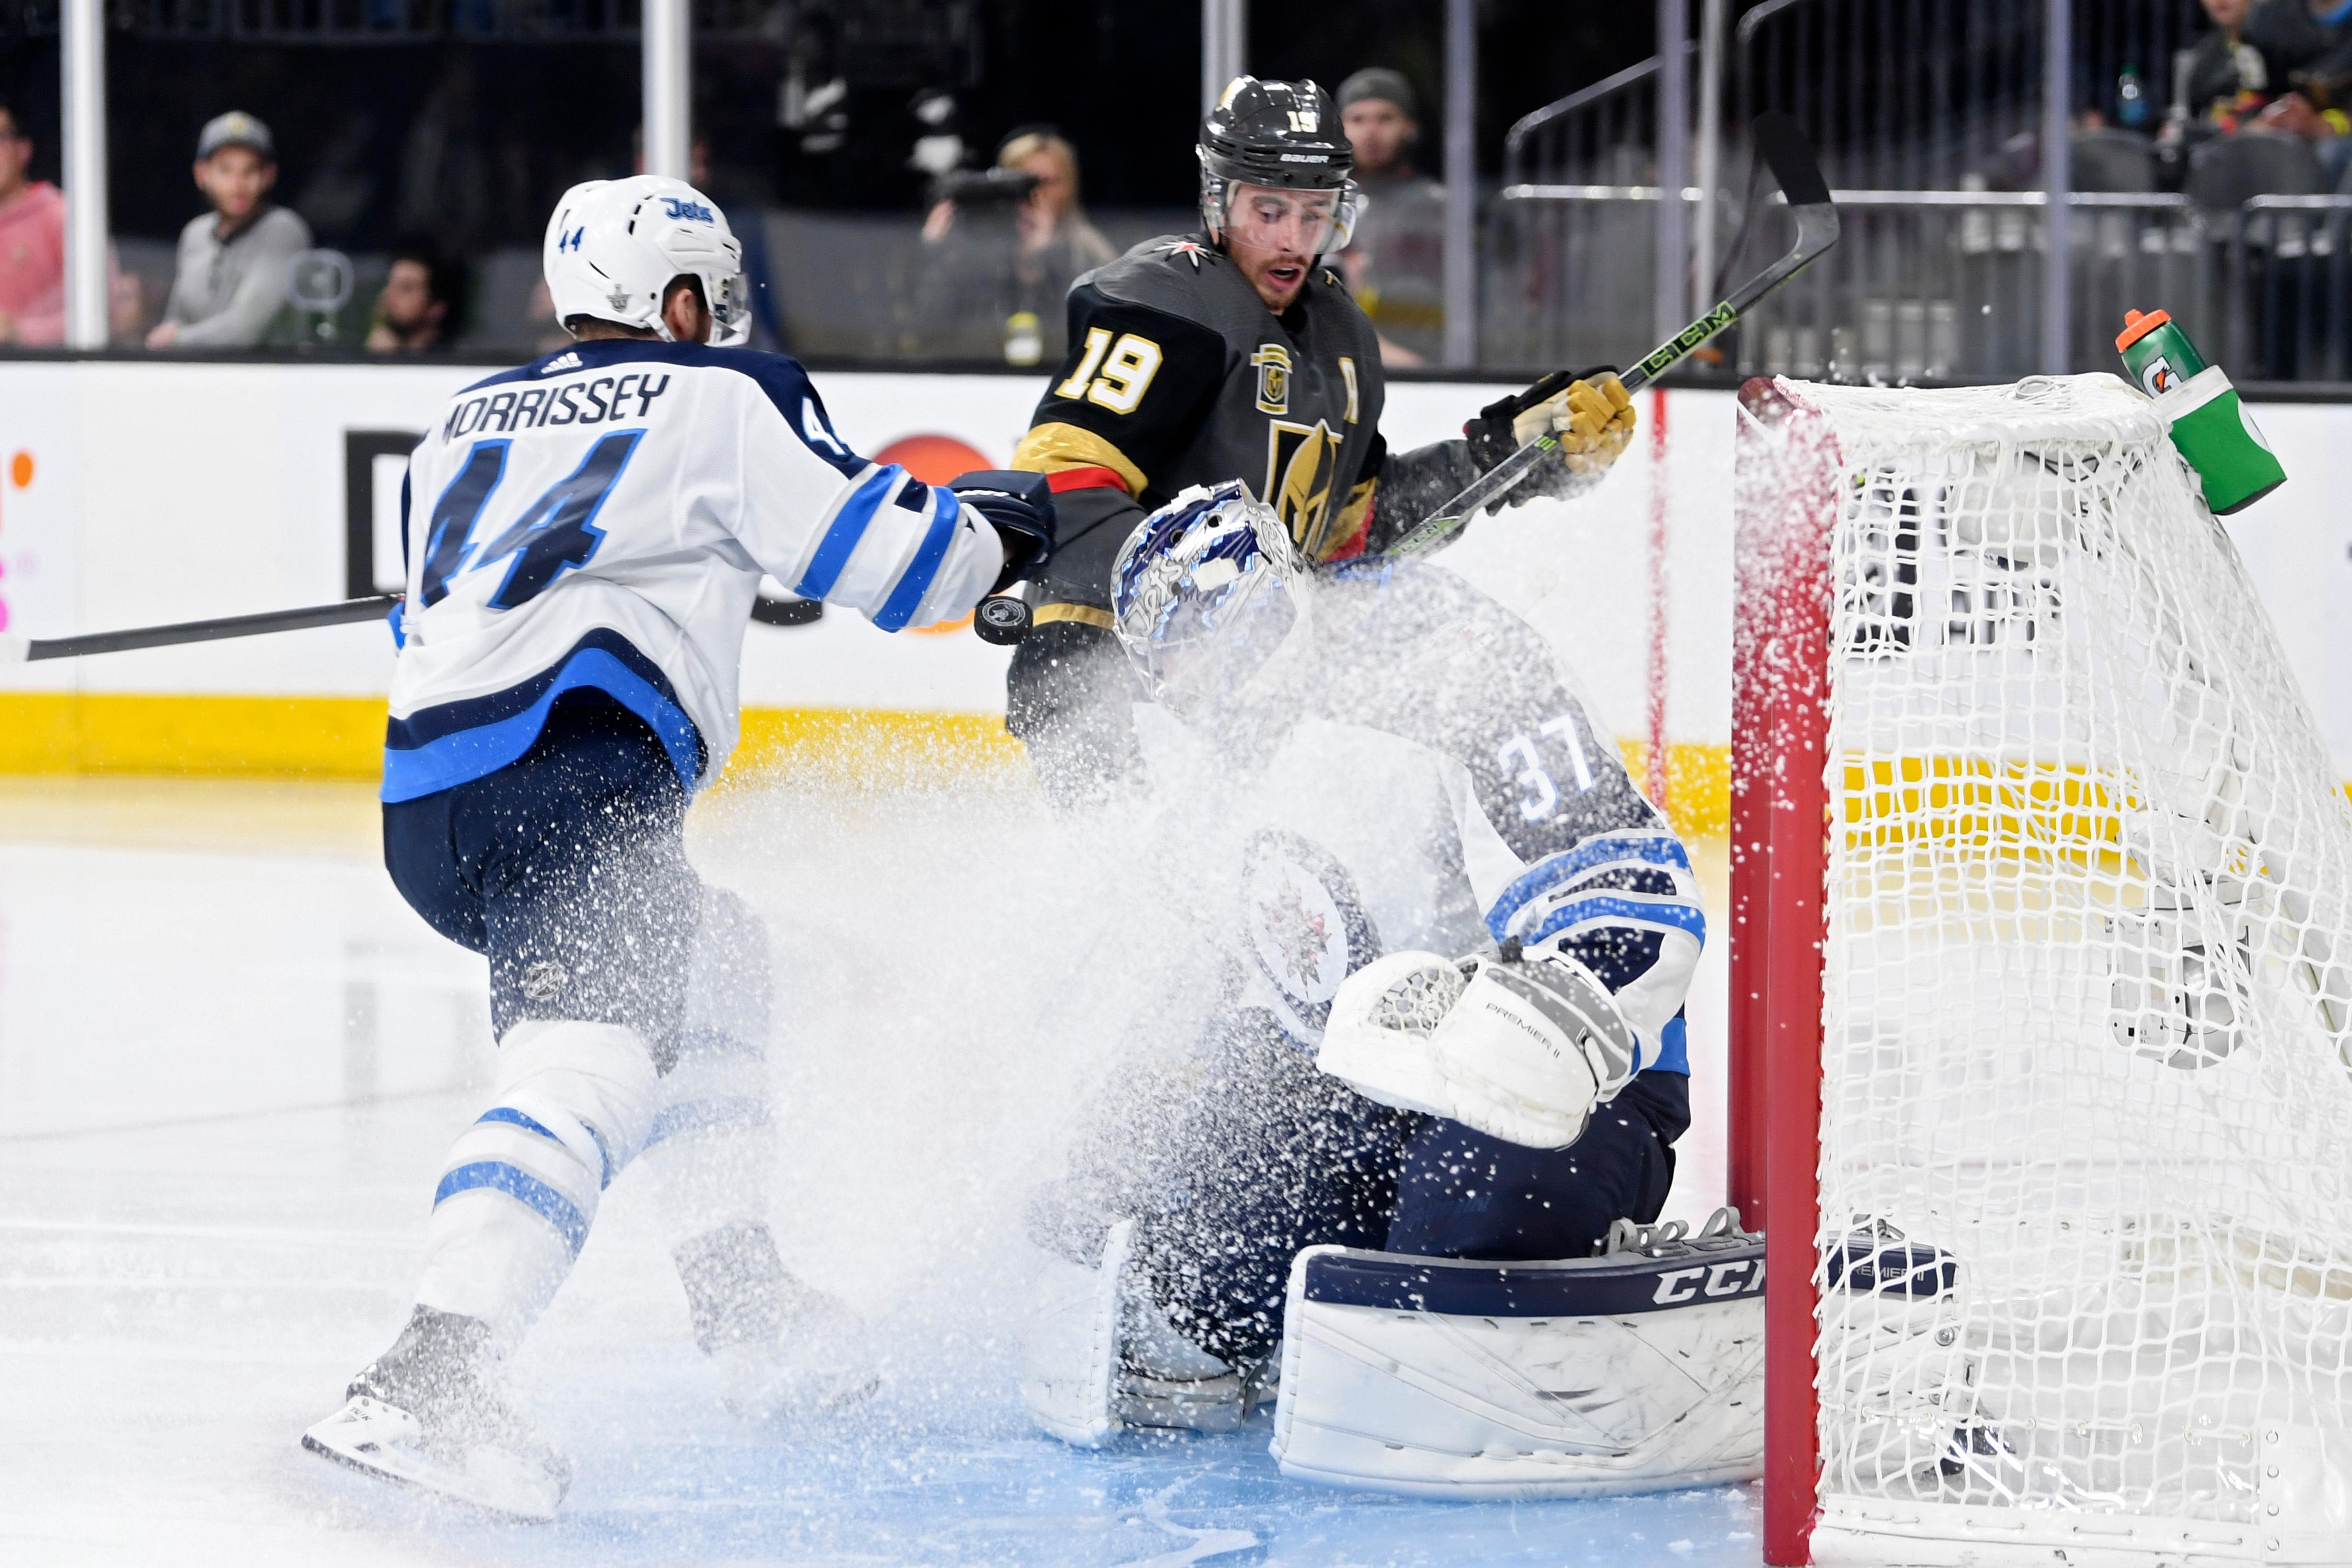 Winnipeg Jets goaltender Connor Hellebuyck (37) makes a stop in a spray of ice during Game 3 of their NHL hockey Western Conference Final game against the Vegas Golden Knights Wednesday, May 16, 2018, at T-Mobile Arena. CREDIT: Sam Morris/Las Vegas News Bureau